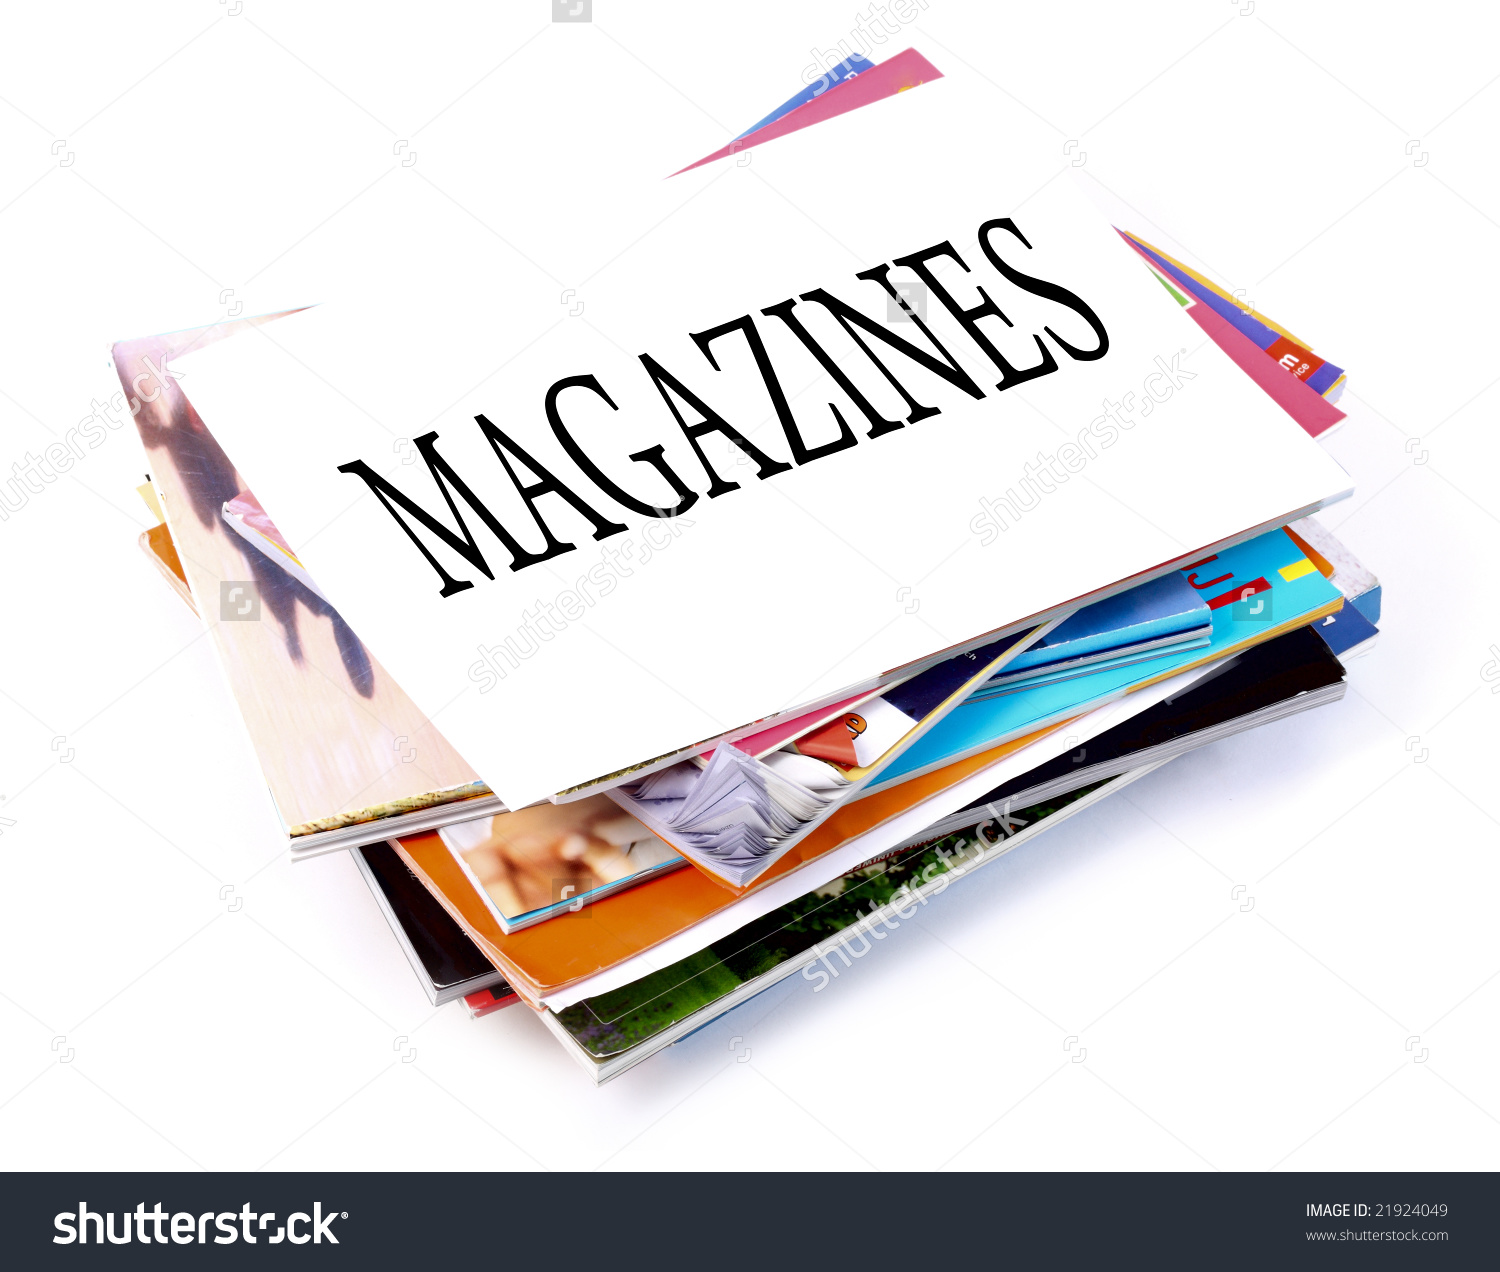 Stack of magazines clip art.